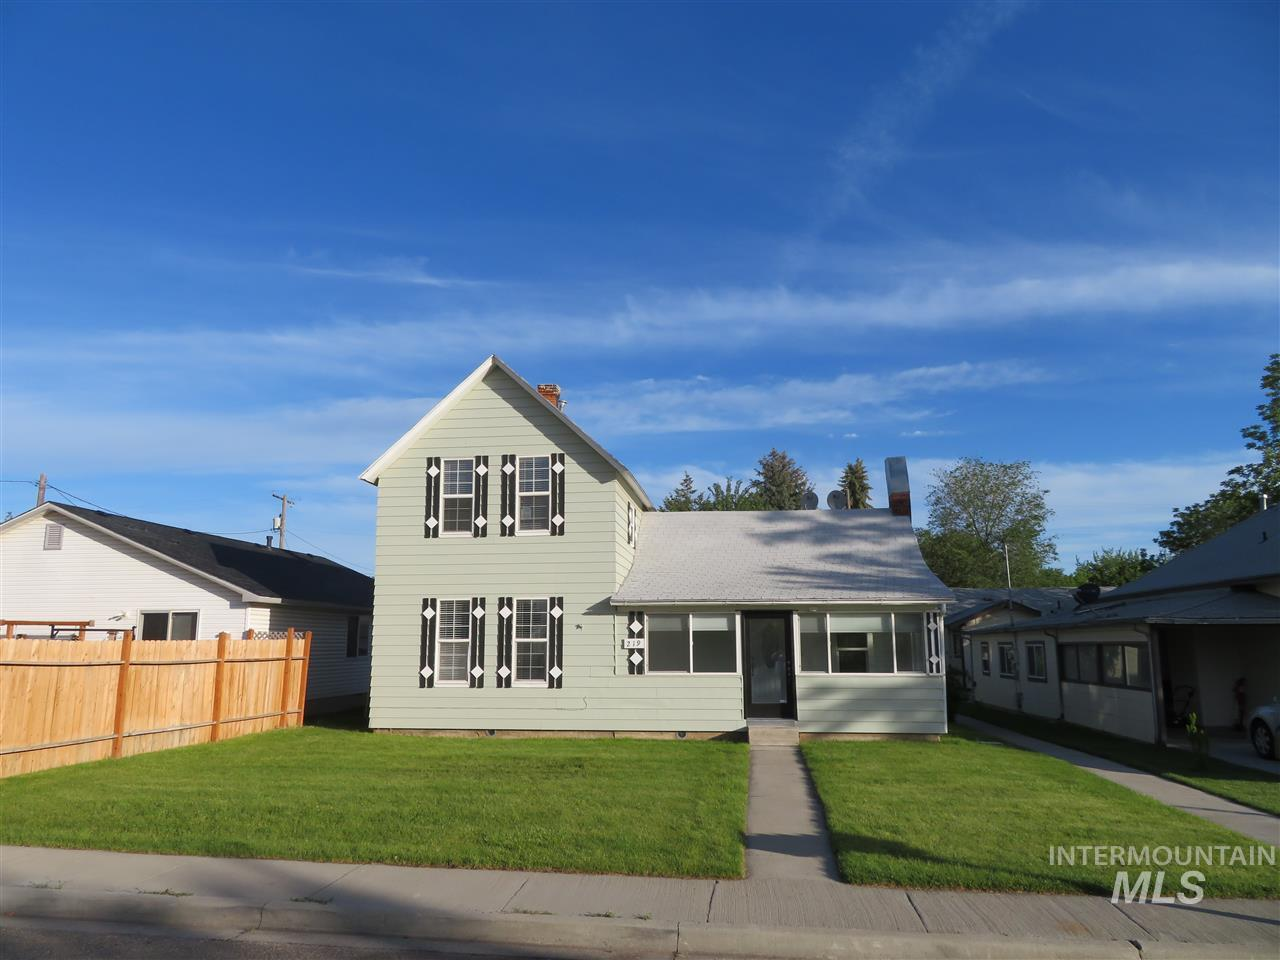 219 24th Ave S, Nampa, Idaho 83651-4473, 4 Bedrooms, 2.5 Bathrooms, Residential Income For Sale, Price $385,000, 98731439